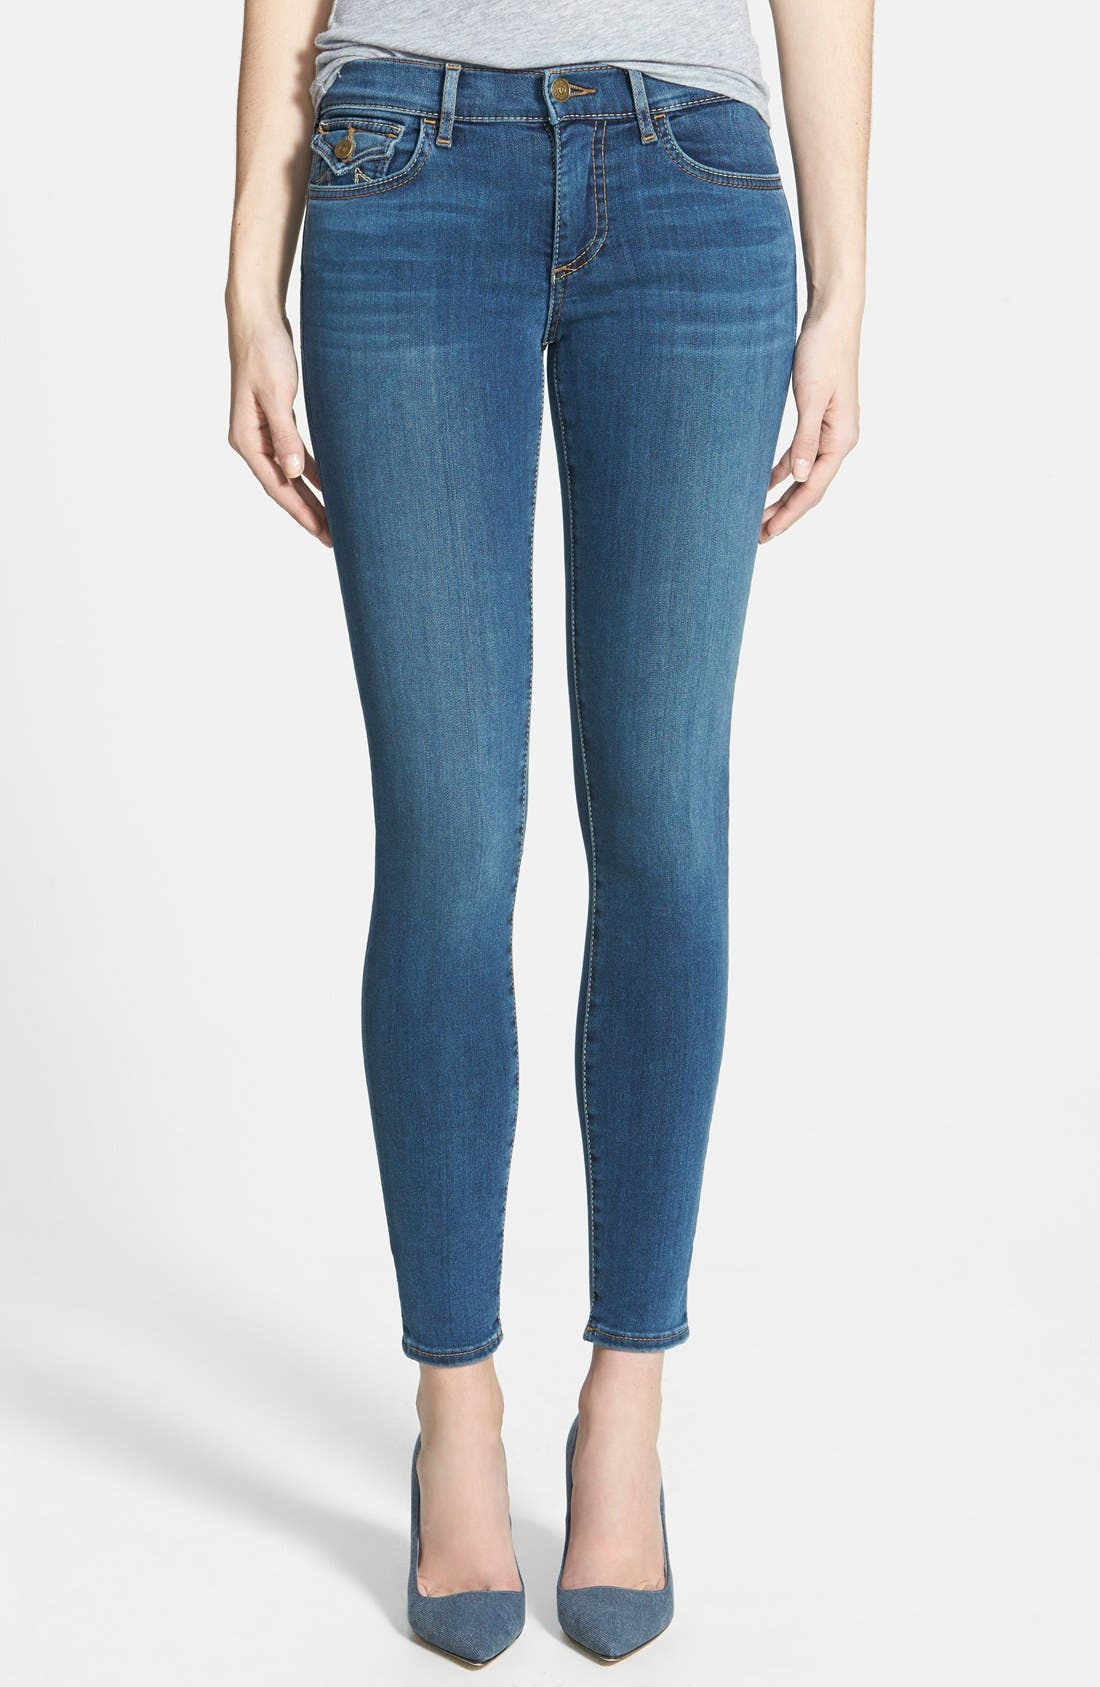 Main Image - True Religion Brand Jeans 'Halle' Mid Rise Super Skinny Jeans (Love No Less)